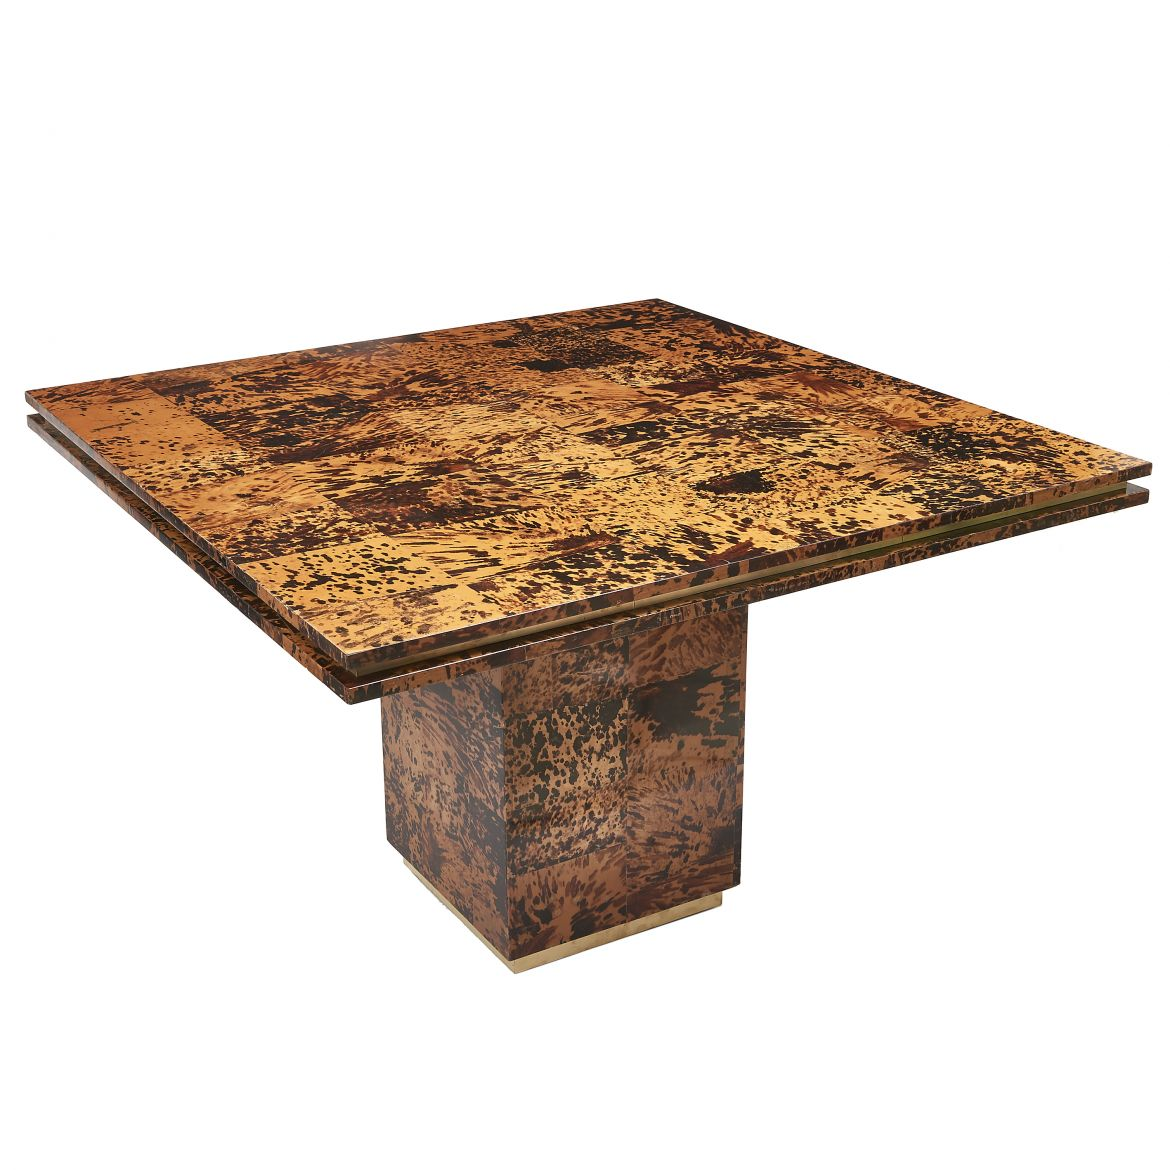 Tortoiseshell Centre Table